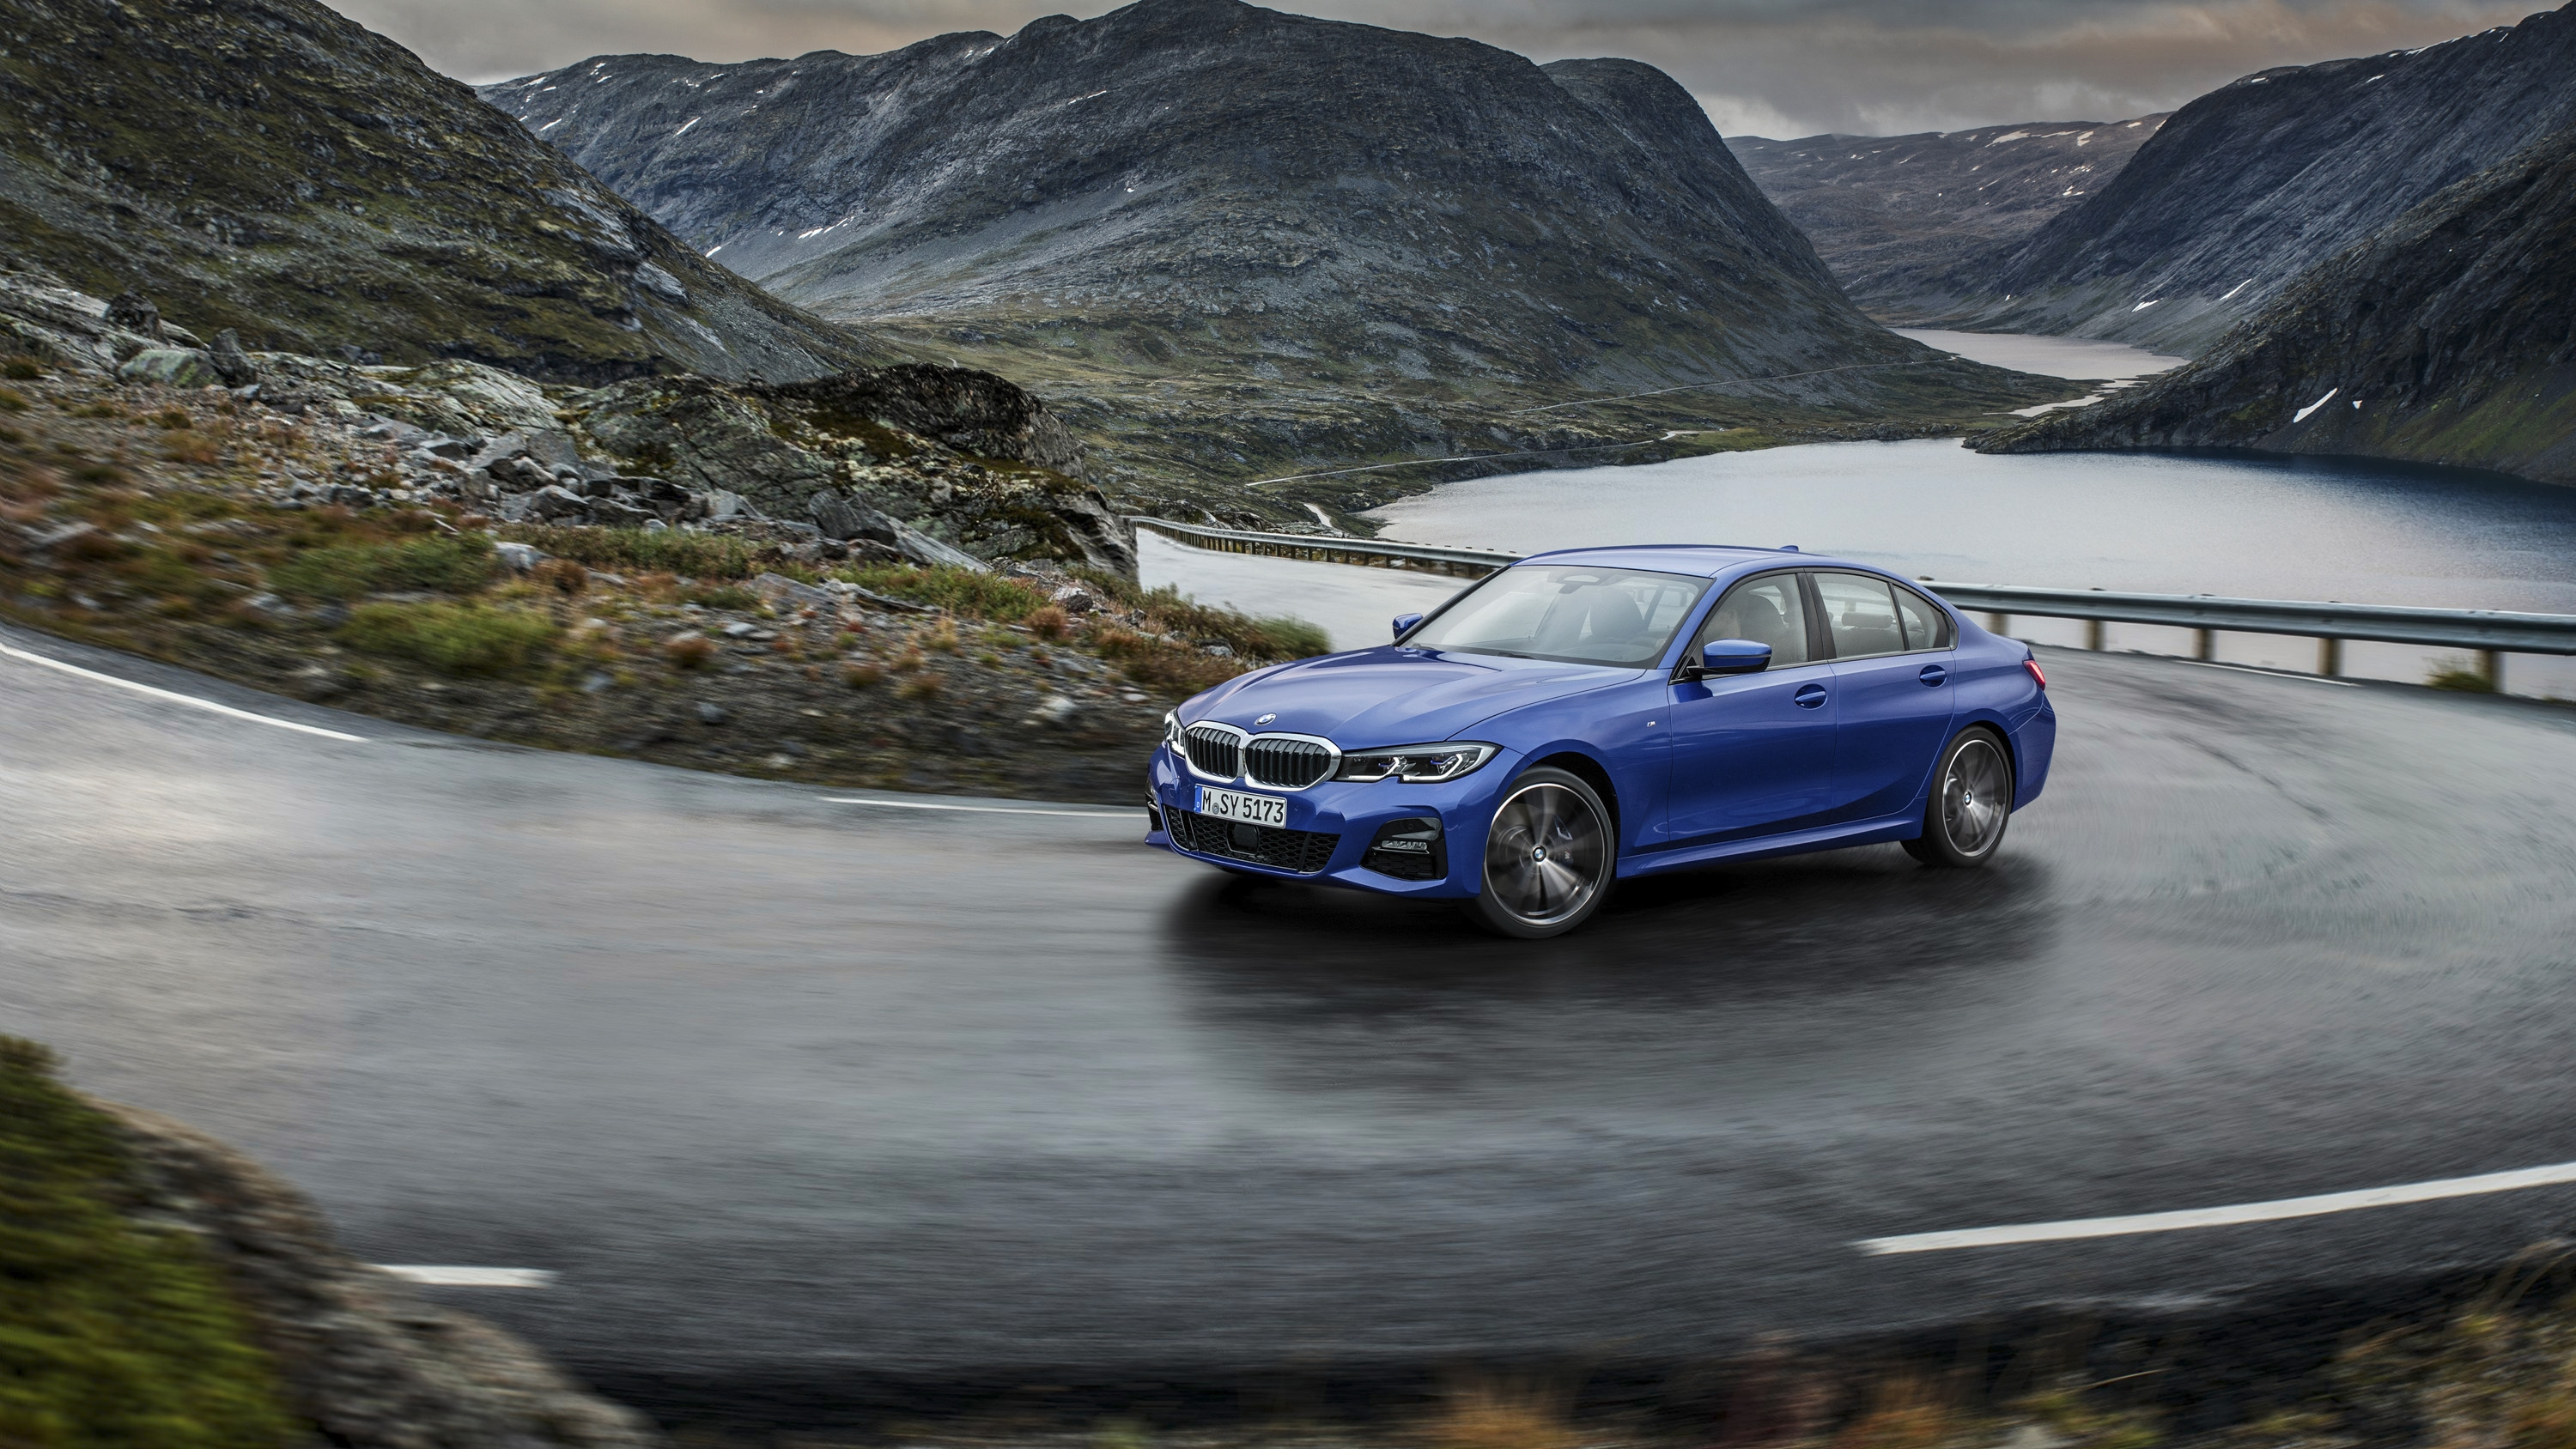 13 Astonishing Facts About The New 2019 BMW 3 Series | Top Speed